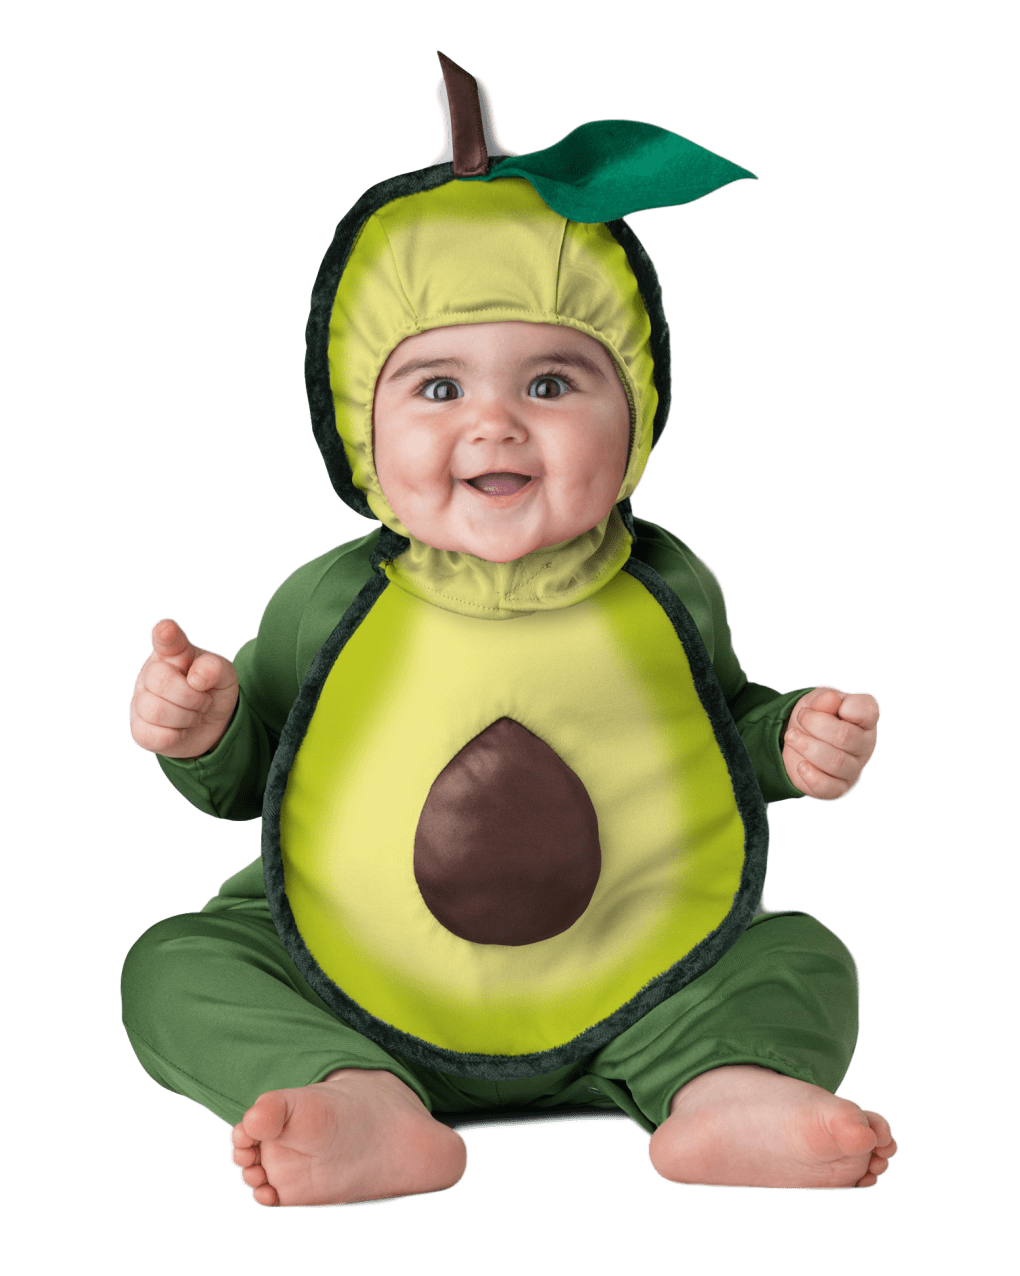 Merqwadd Unisex Toddler Baby Halloween Avocado Costume Cute Velvet Costumes Outfits